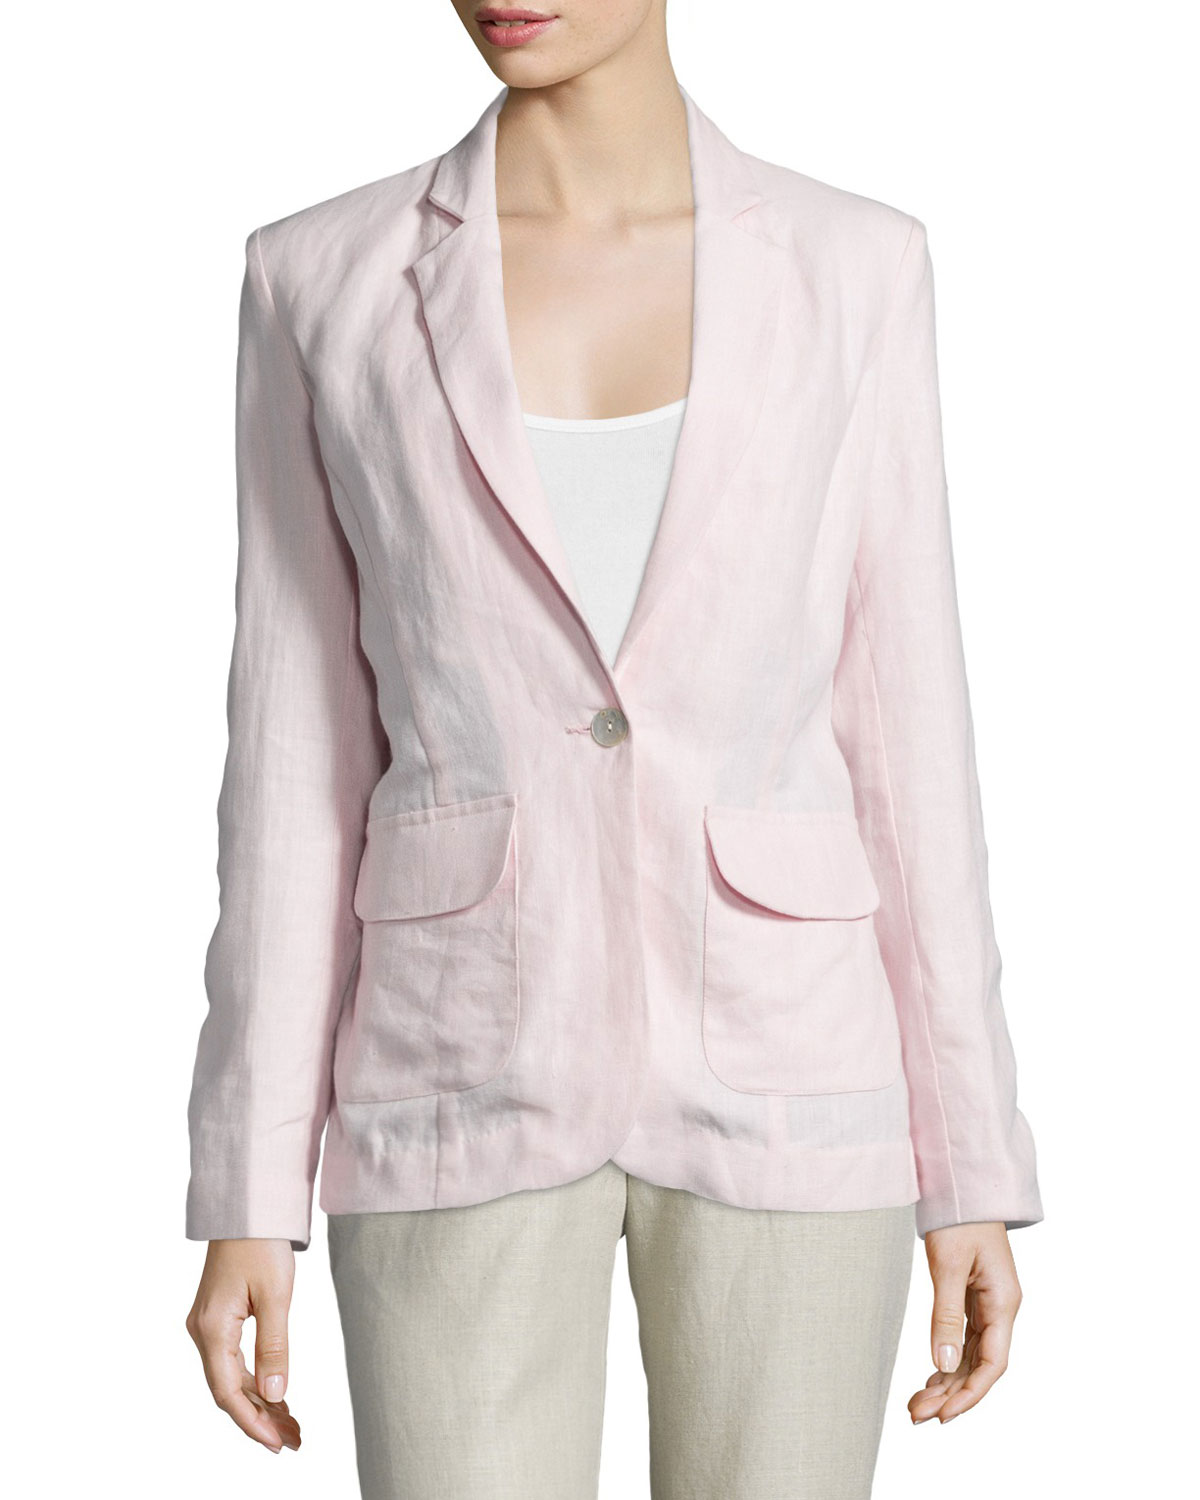 One-Button Fitted Linen Blazer, Women's, Size: LARGE12-14, Light Pink - Neiman Marcus